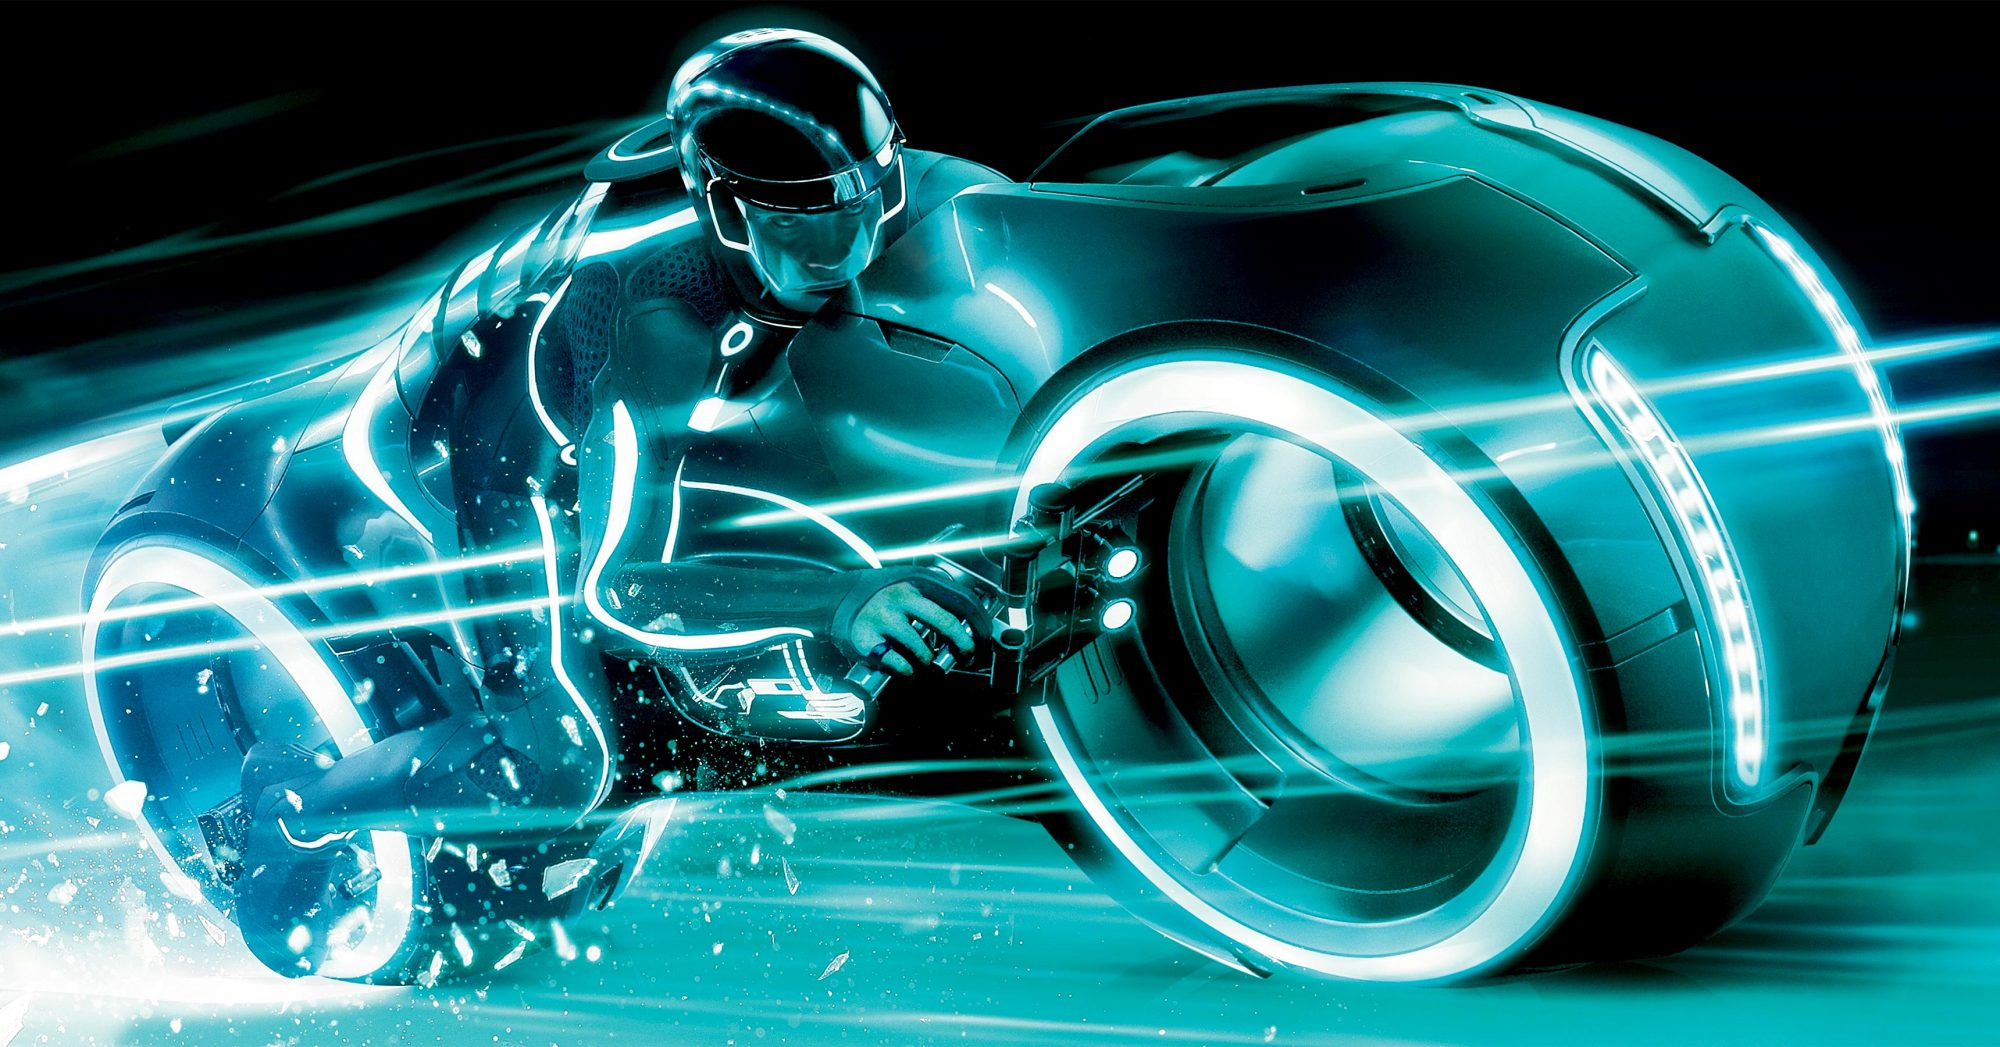 Tron: Legacy (2010) CR: Disney